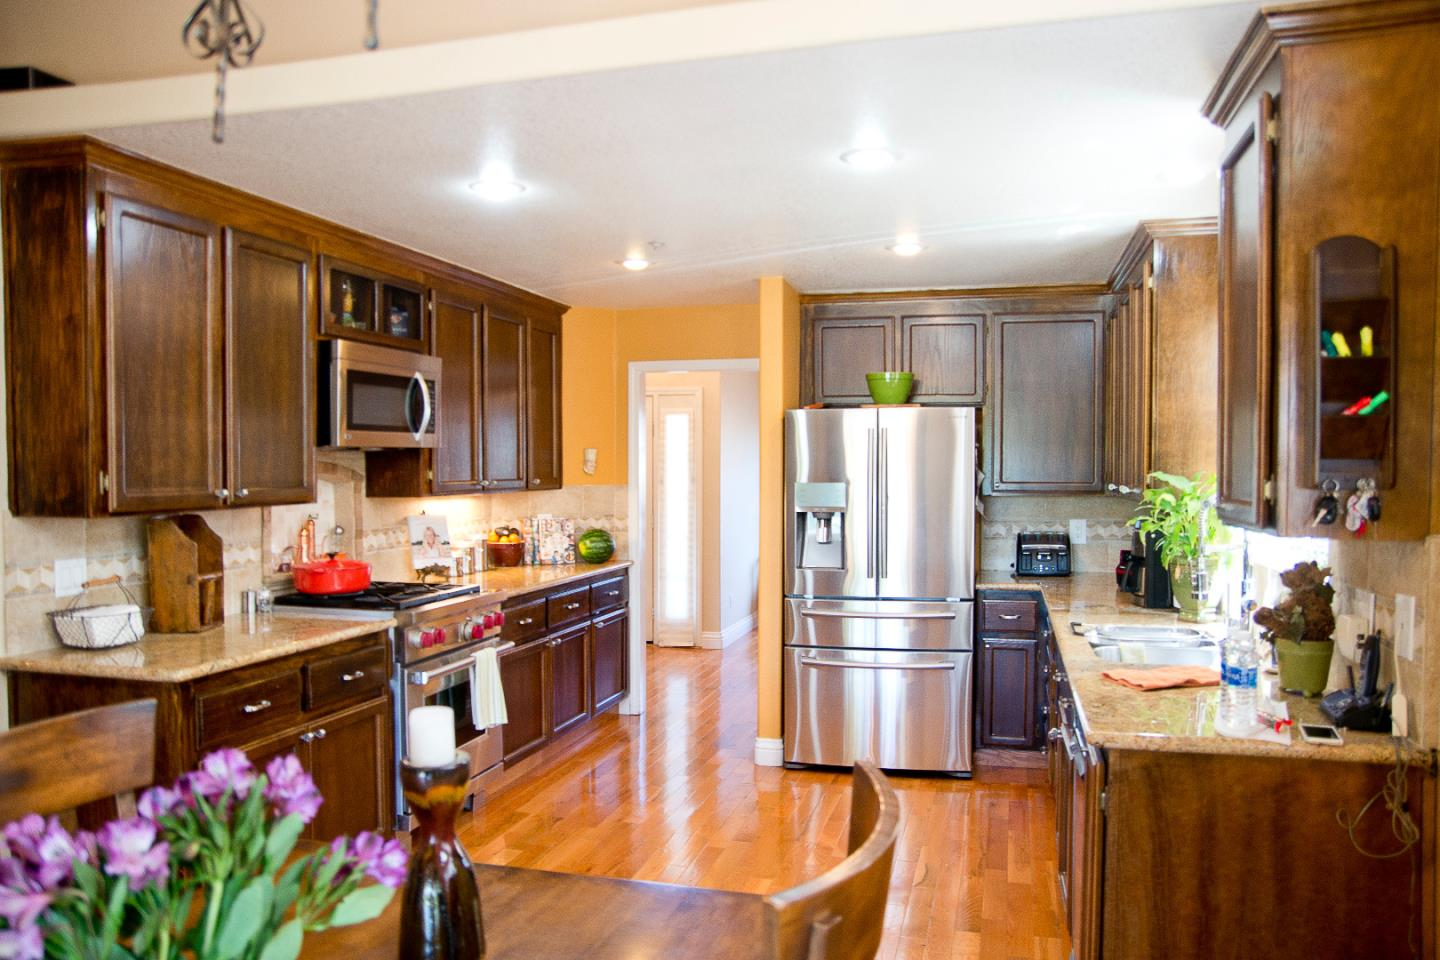 Additional photo for property listing at 17399 Walnut Grove Drive  Morgan Hill, カリフォルニア 95037 アメリカ合衆国